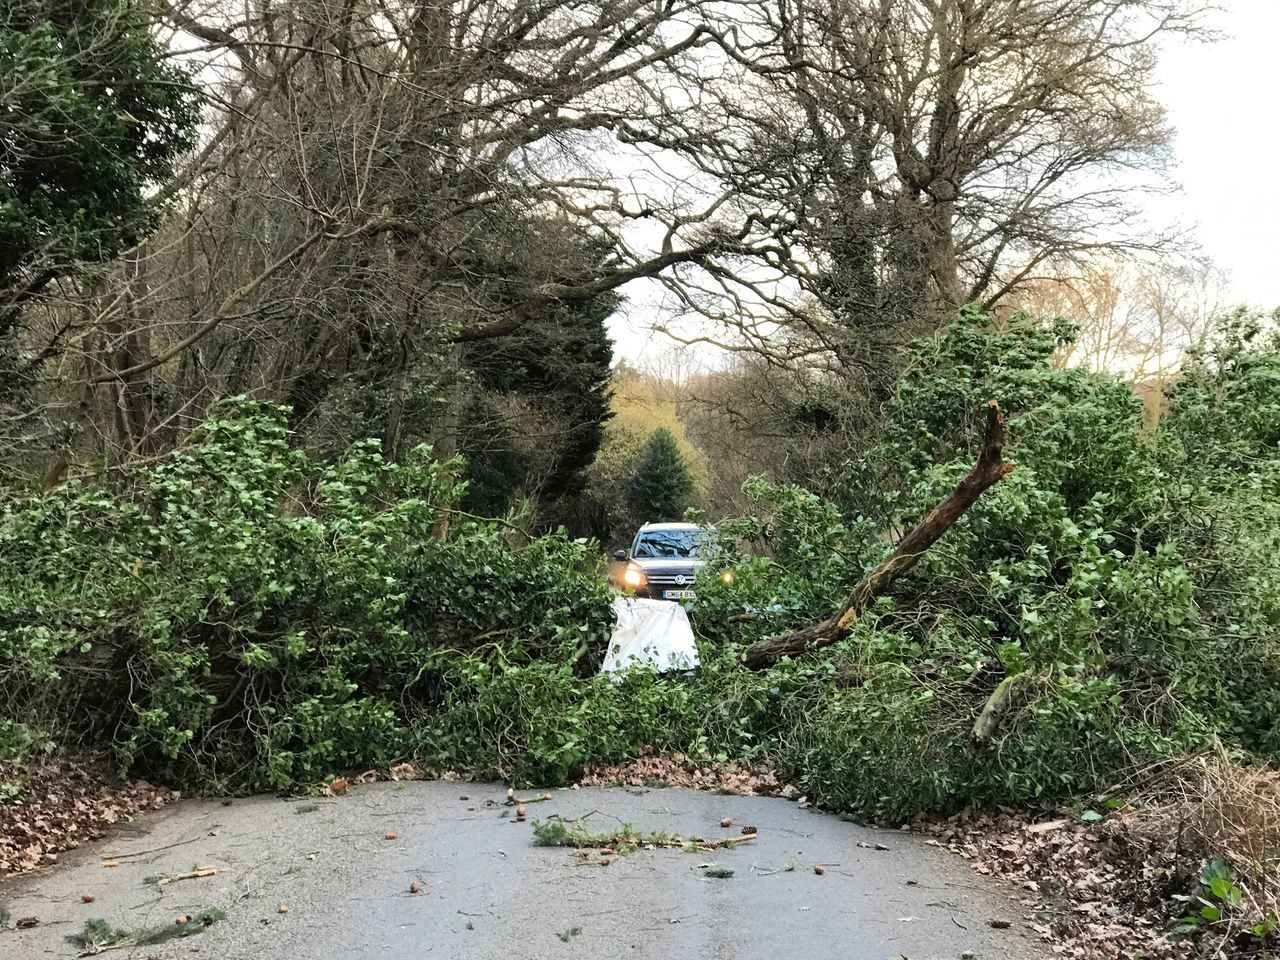 Storm Doris caused trees to fall in Surrey. Tree One Person Nature Forest Growth Plant Outdoors Beauty In Nature Standing Day Real People One Man Only Men Adults Only People Adult Young Adult Mammal Storm Doris Stormy Weather Gales Guildford Surrey Fallen Tree Fallen Trees